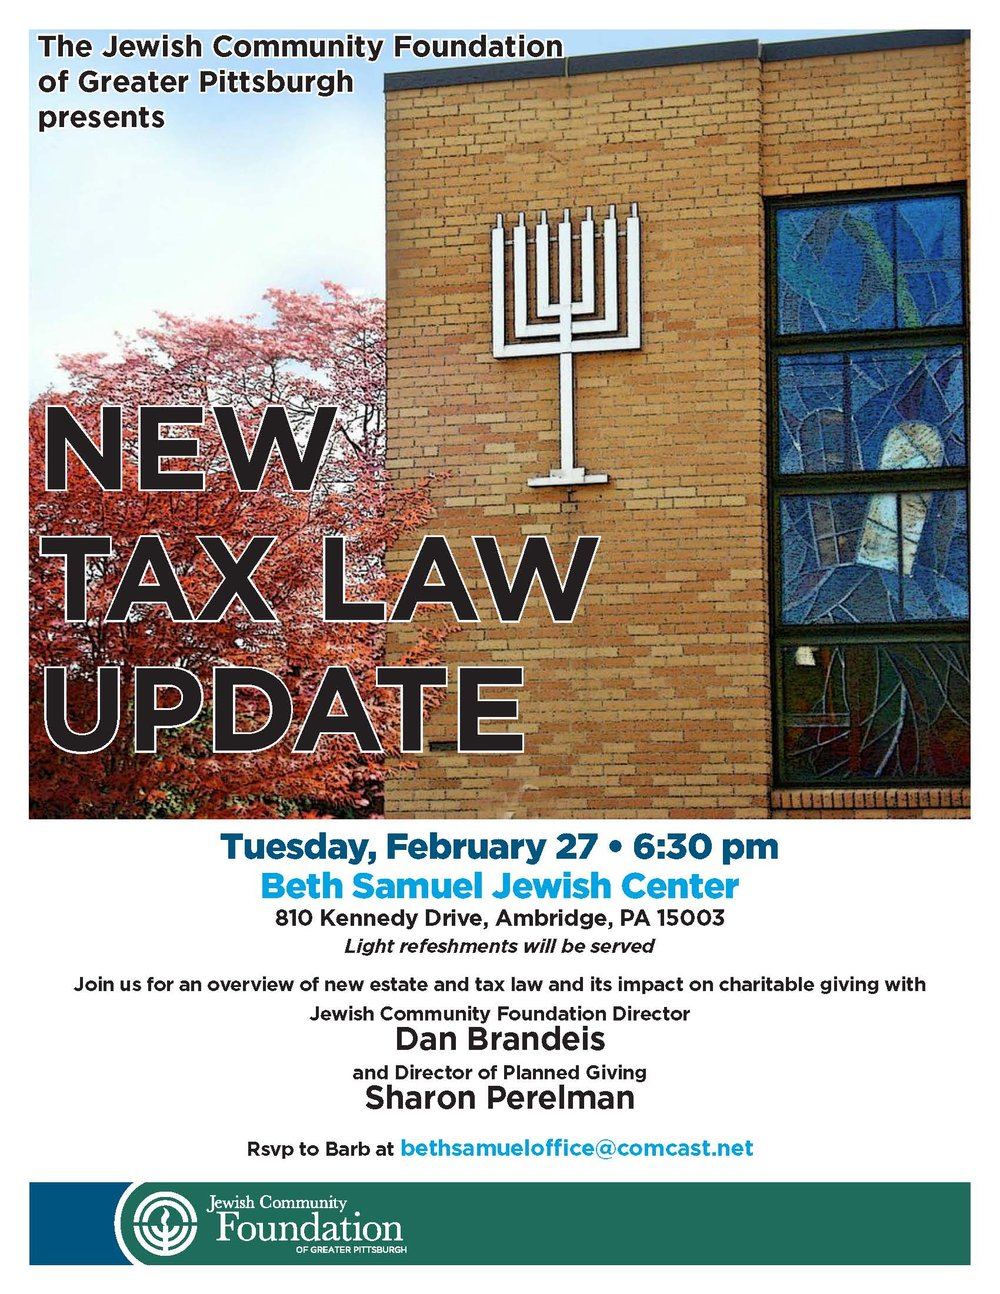 A2018.EstateTaxUpdate.Flyer.Draft2.jpg